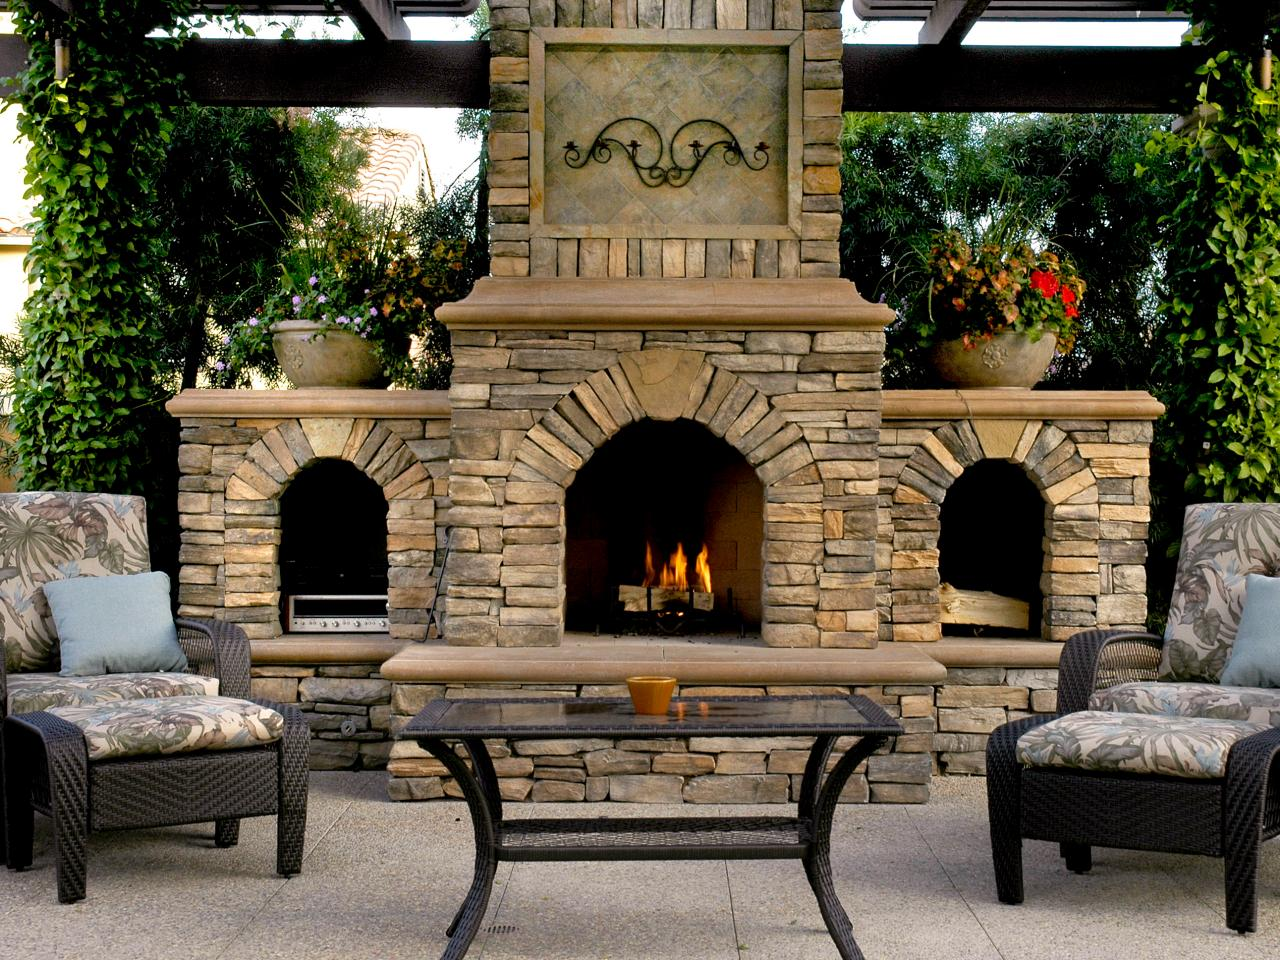 Explore your options for an outdoor wood burning fireplace